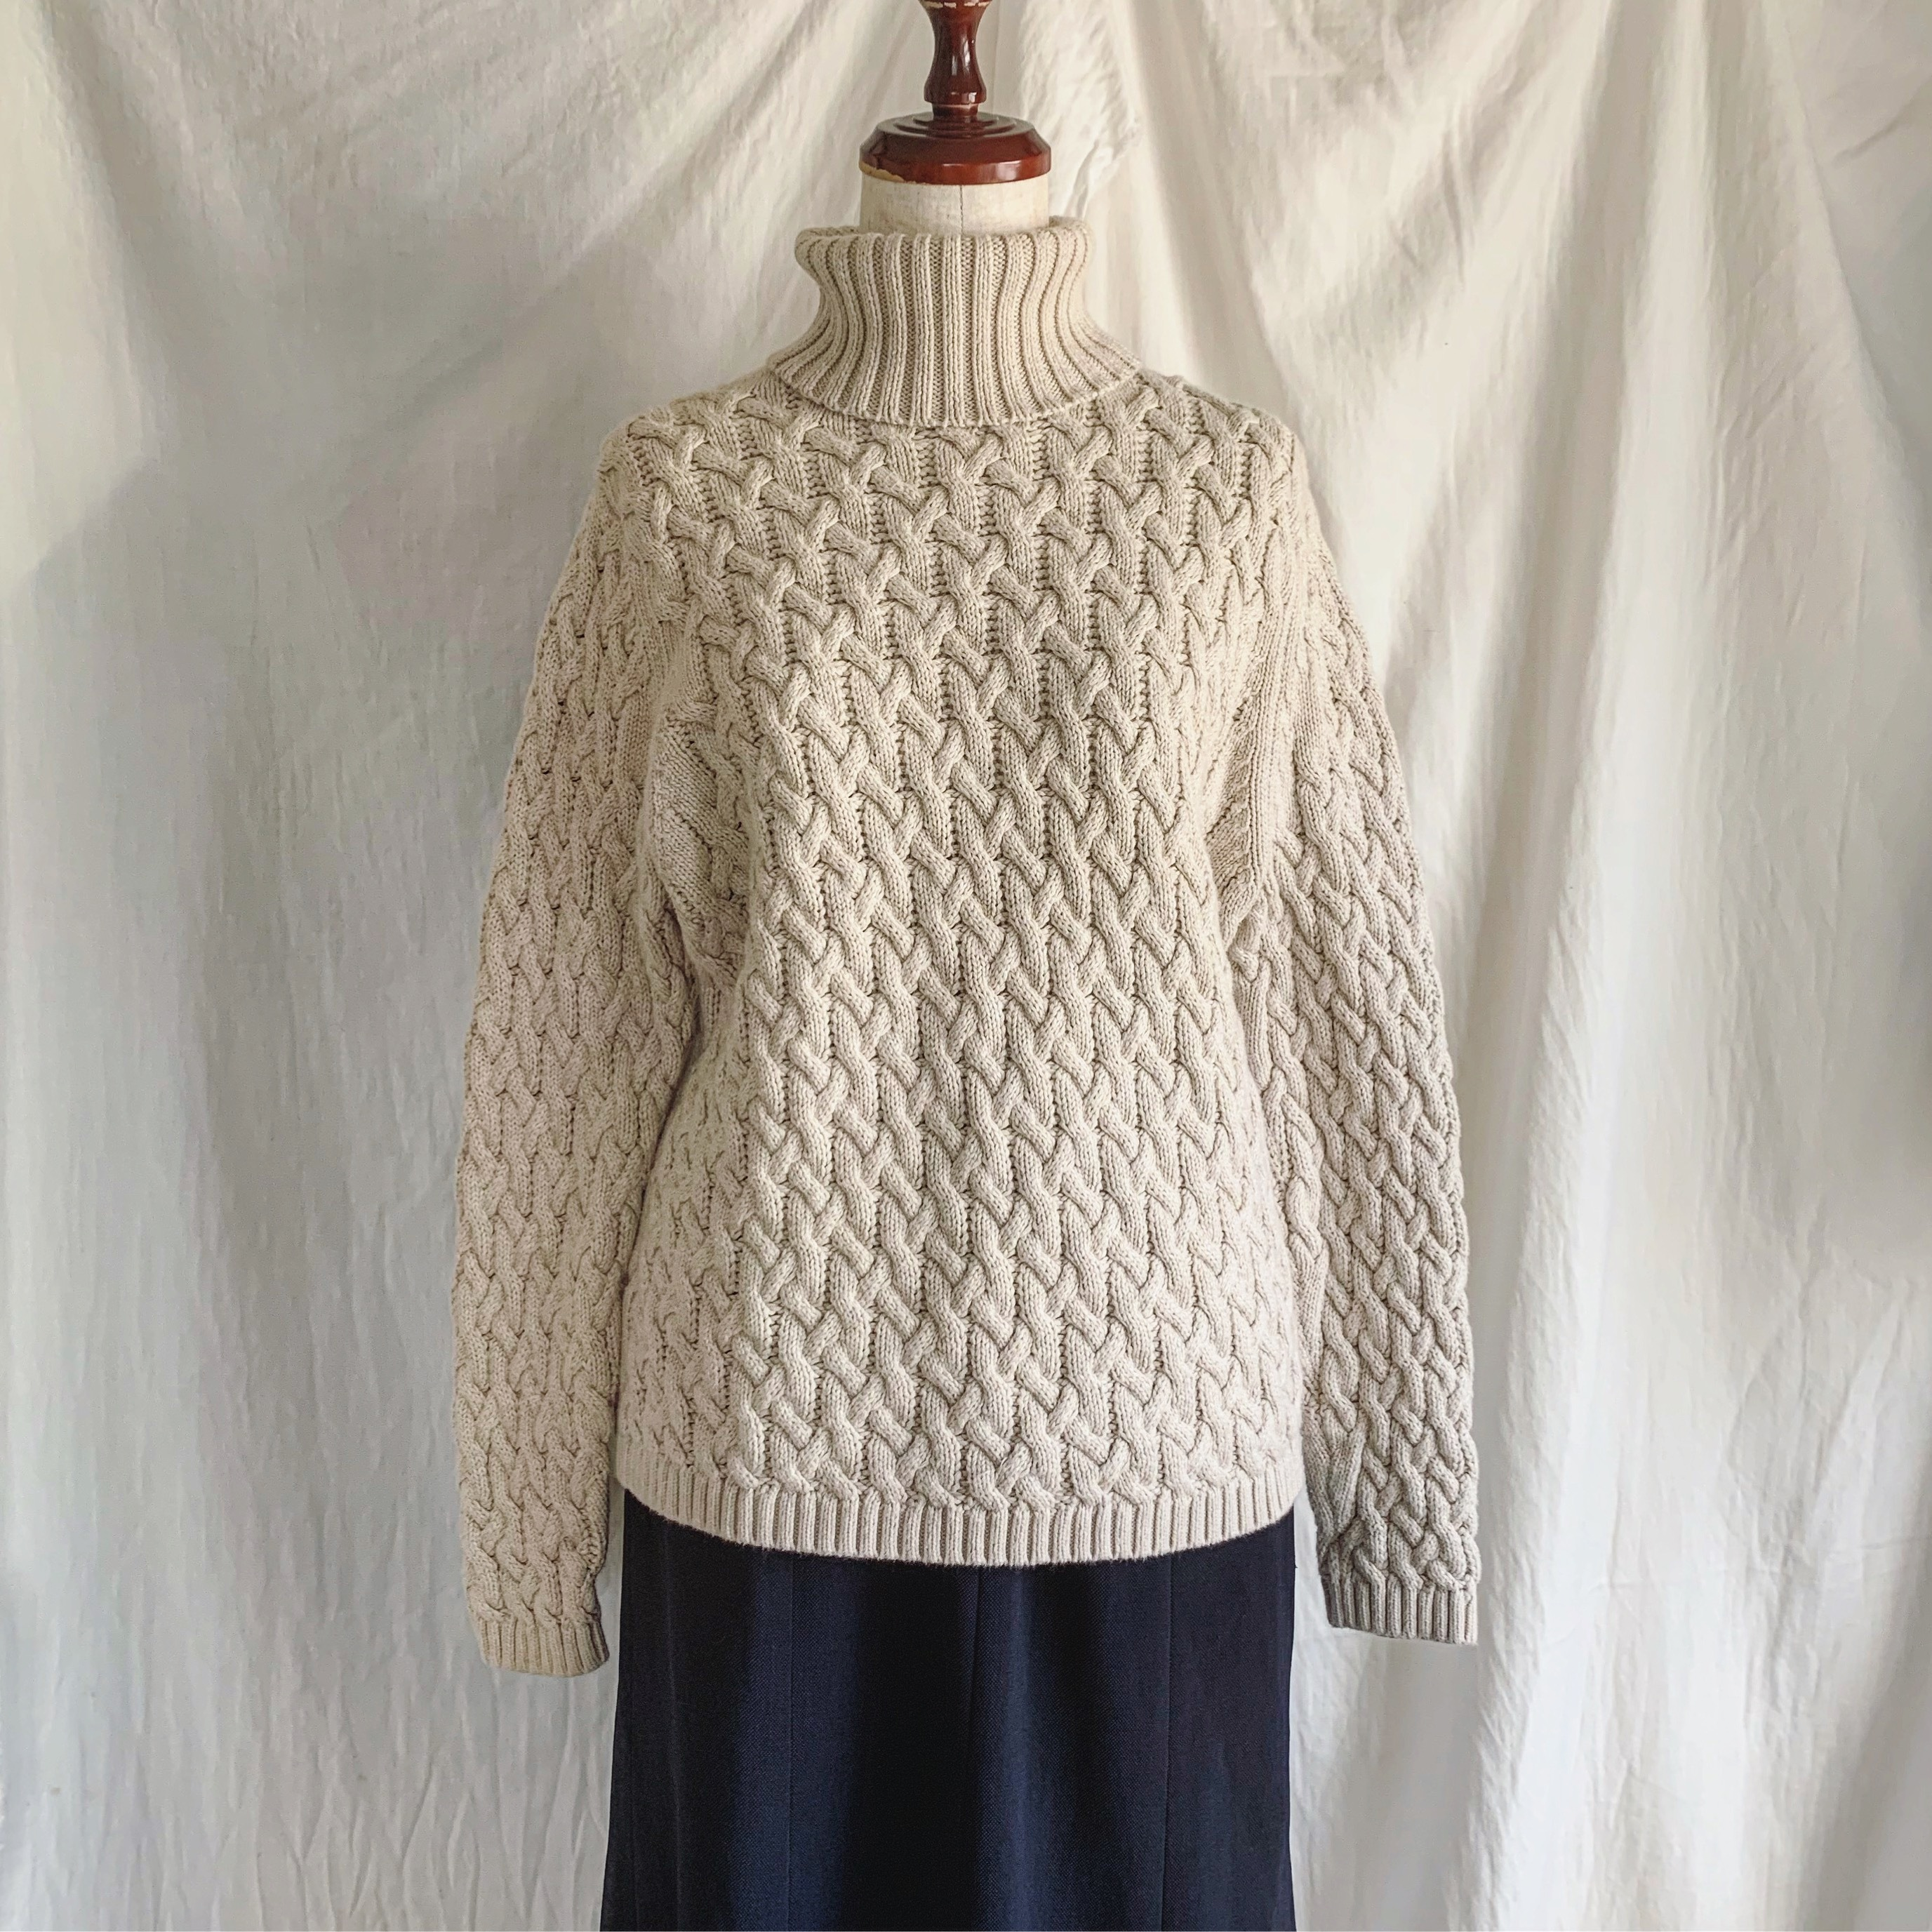 vintage cotton knit sweater